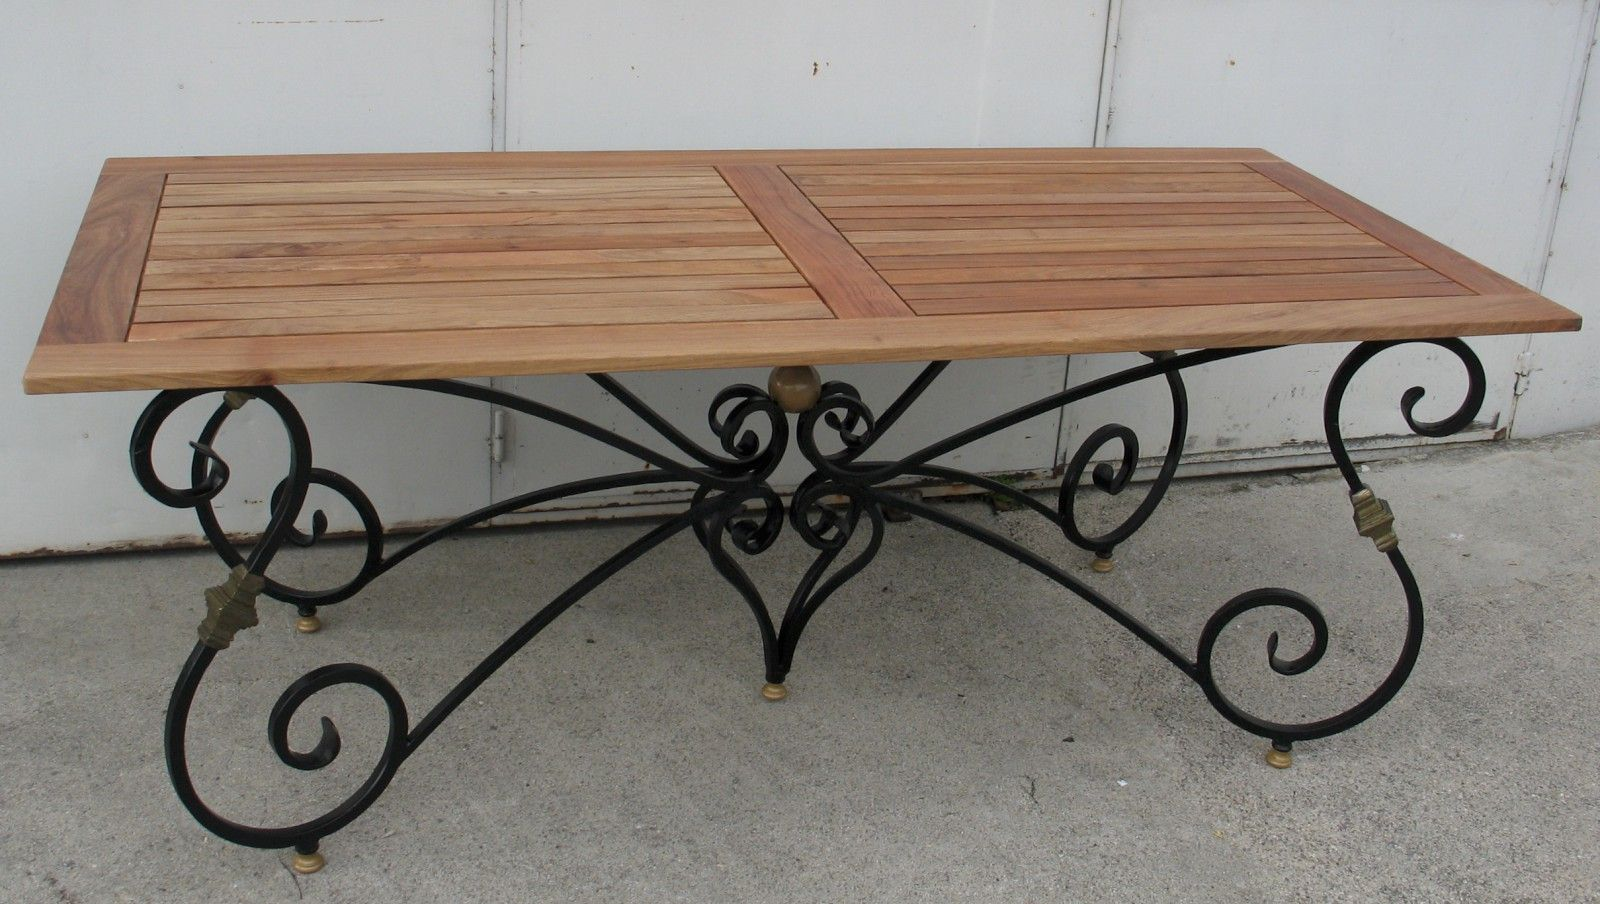 Dining Table With Base In Black And Gold Wrought Iron With